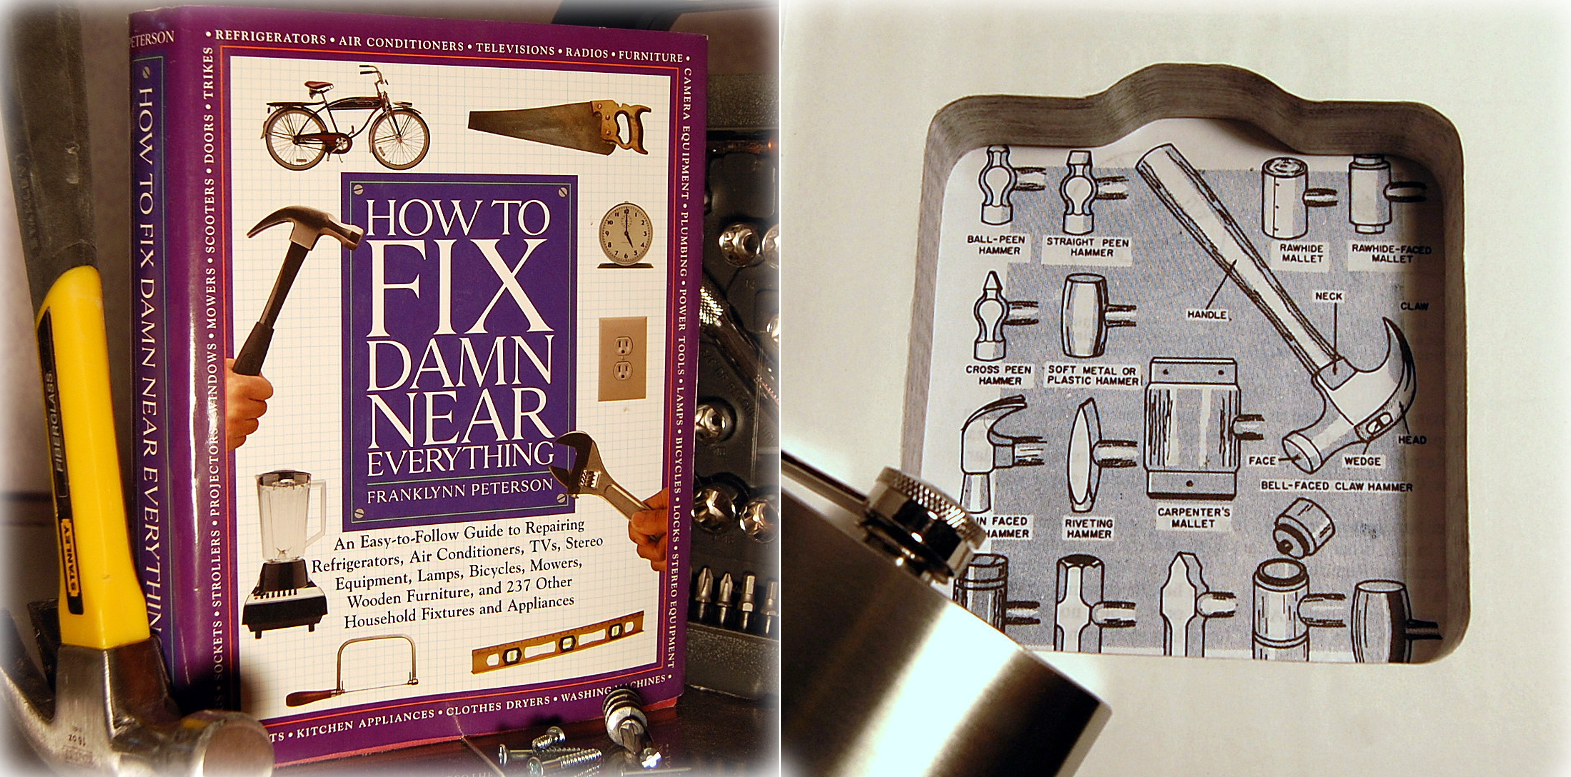 SecretSafeBooks2How to Fix Damn Near Everything